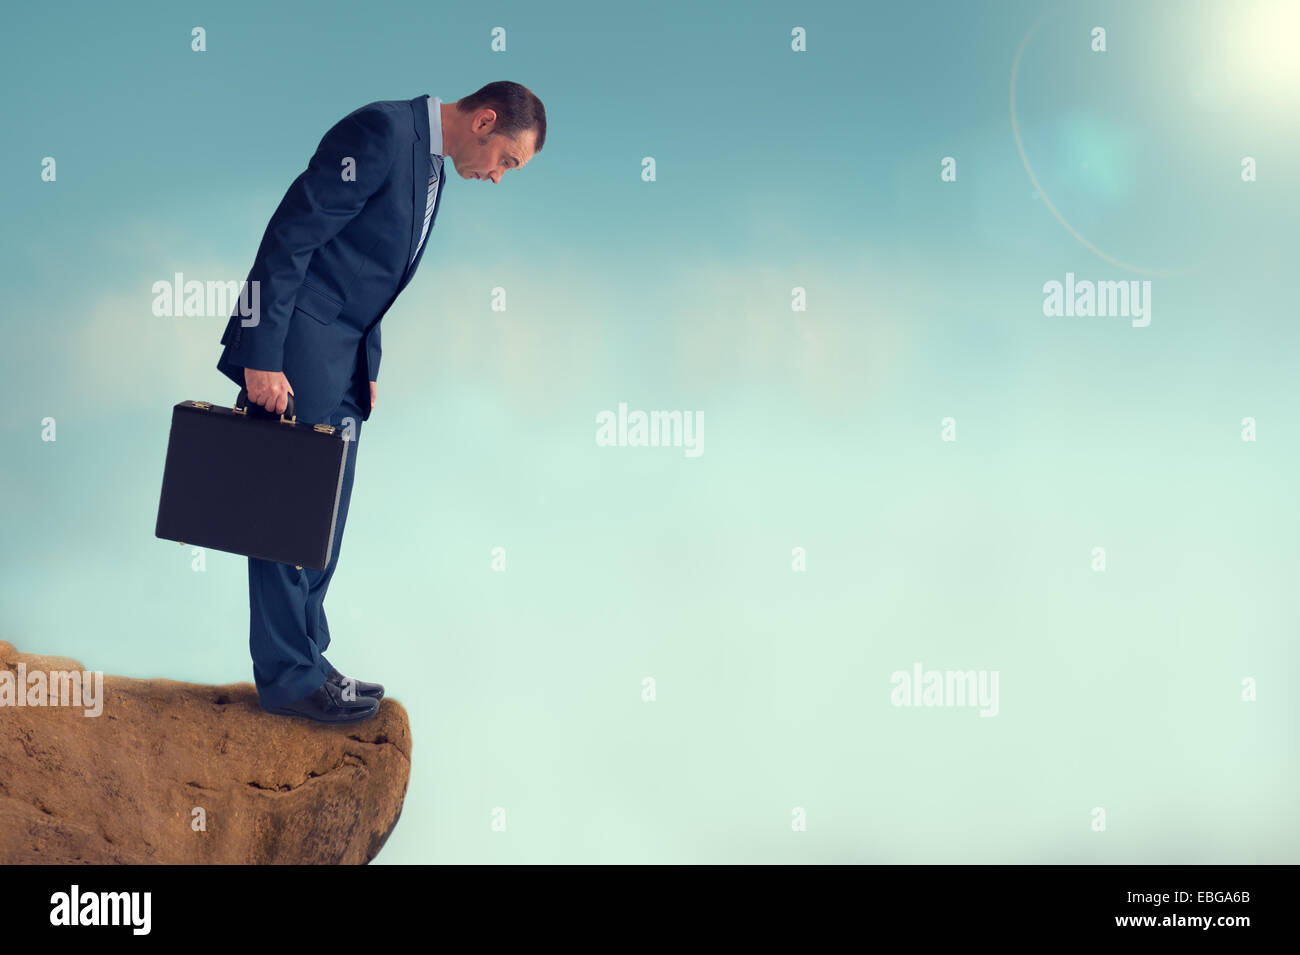 businessman gap worry fear obstacle - Stock Image